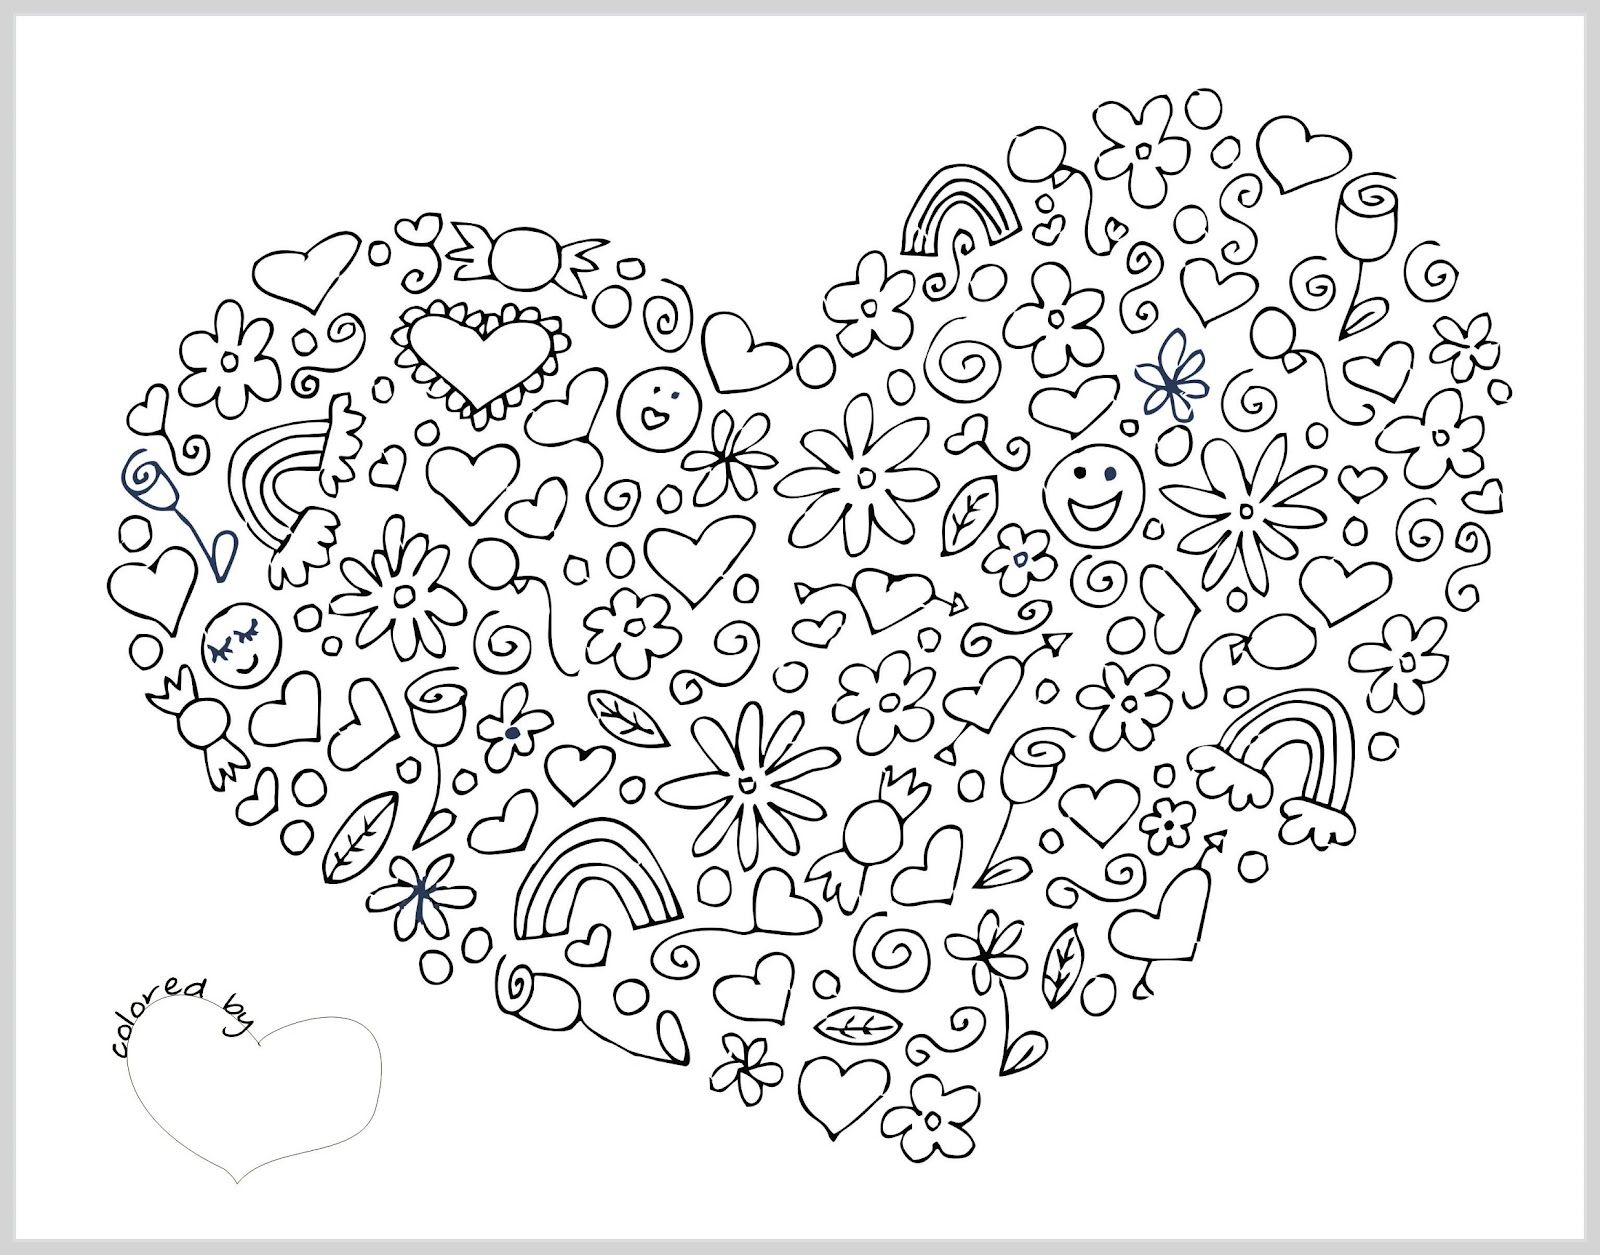 Apples N Oranges Blog February 2012 Valentine Coloring Pages Heart Coloring Pages Love Coloring Pages